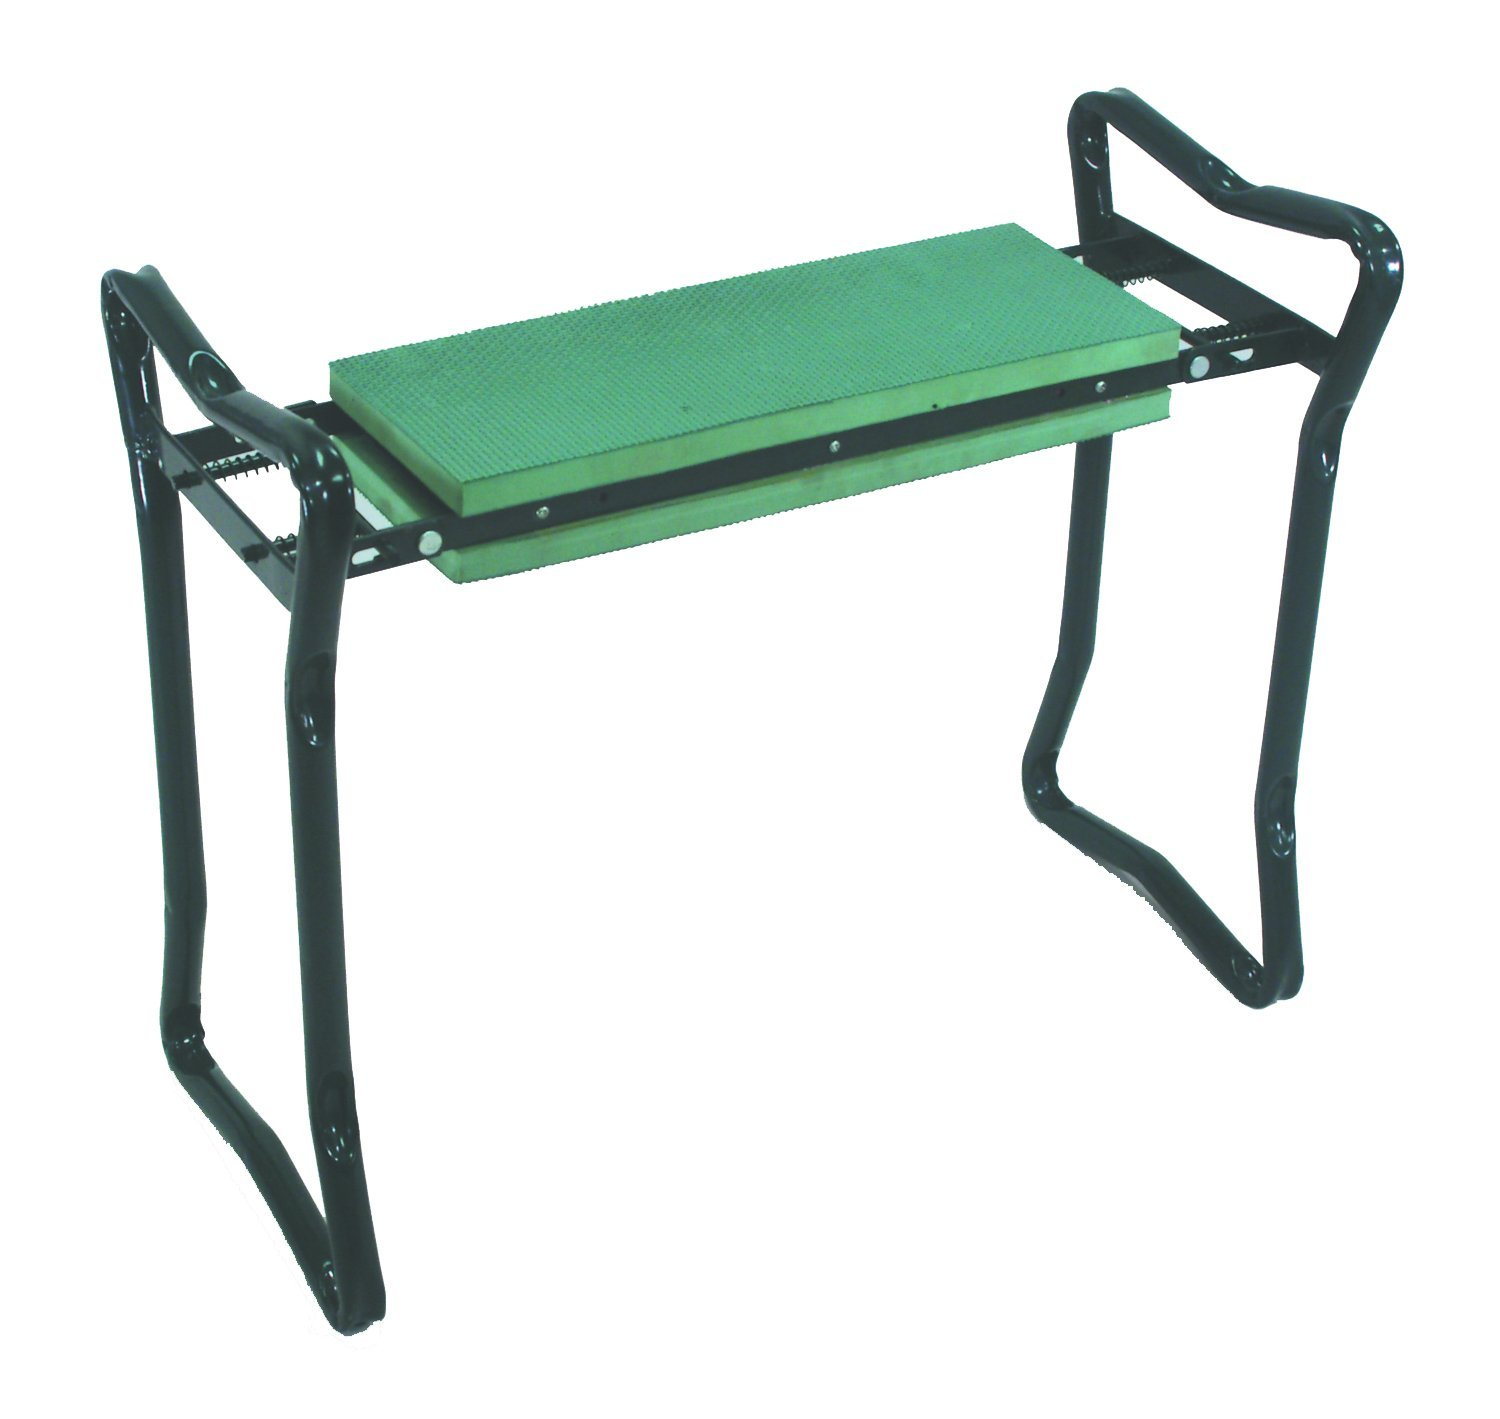 Tierra Garden W7623 Worth Folding Kneeler Bench And Seat Green New